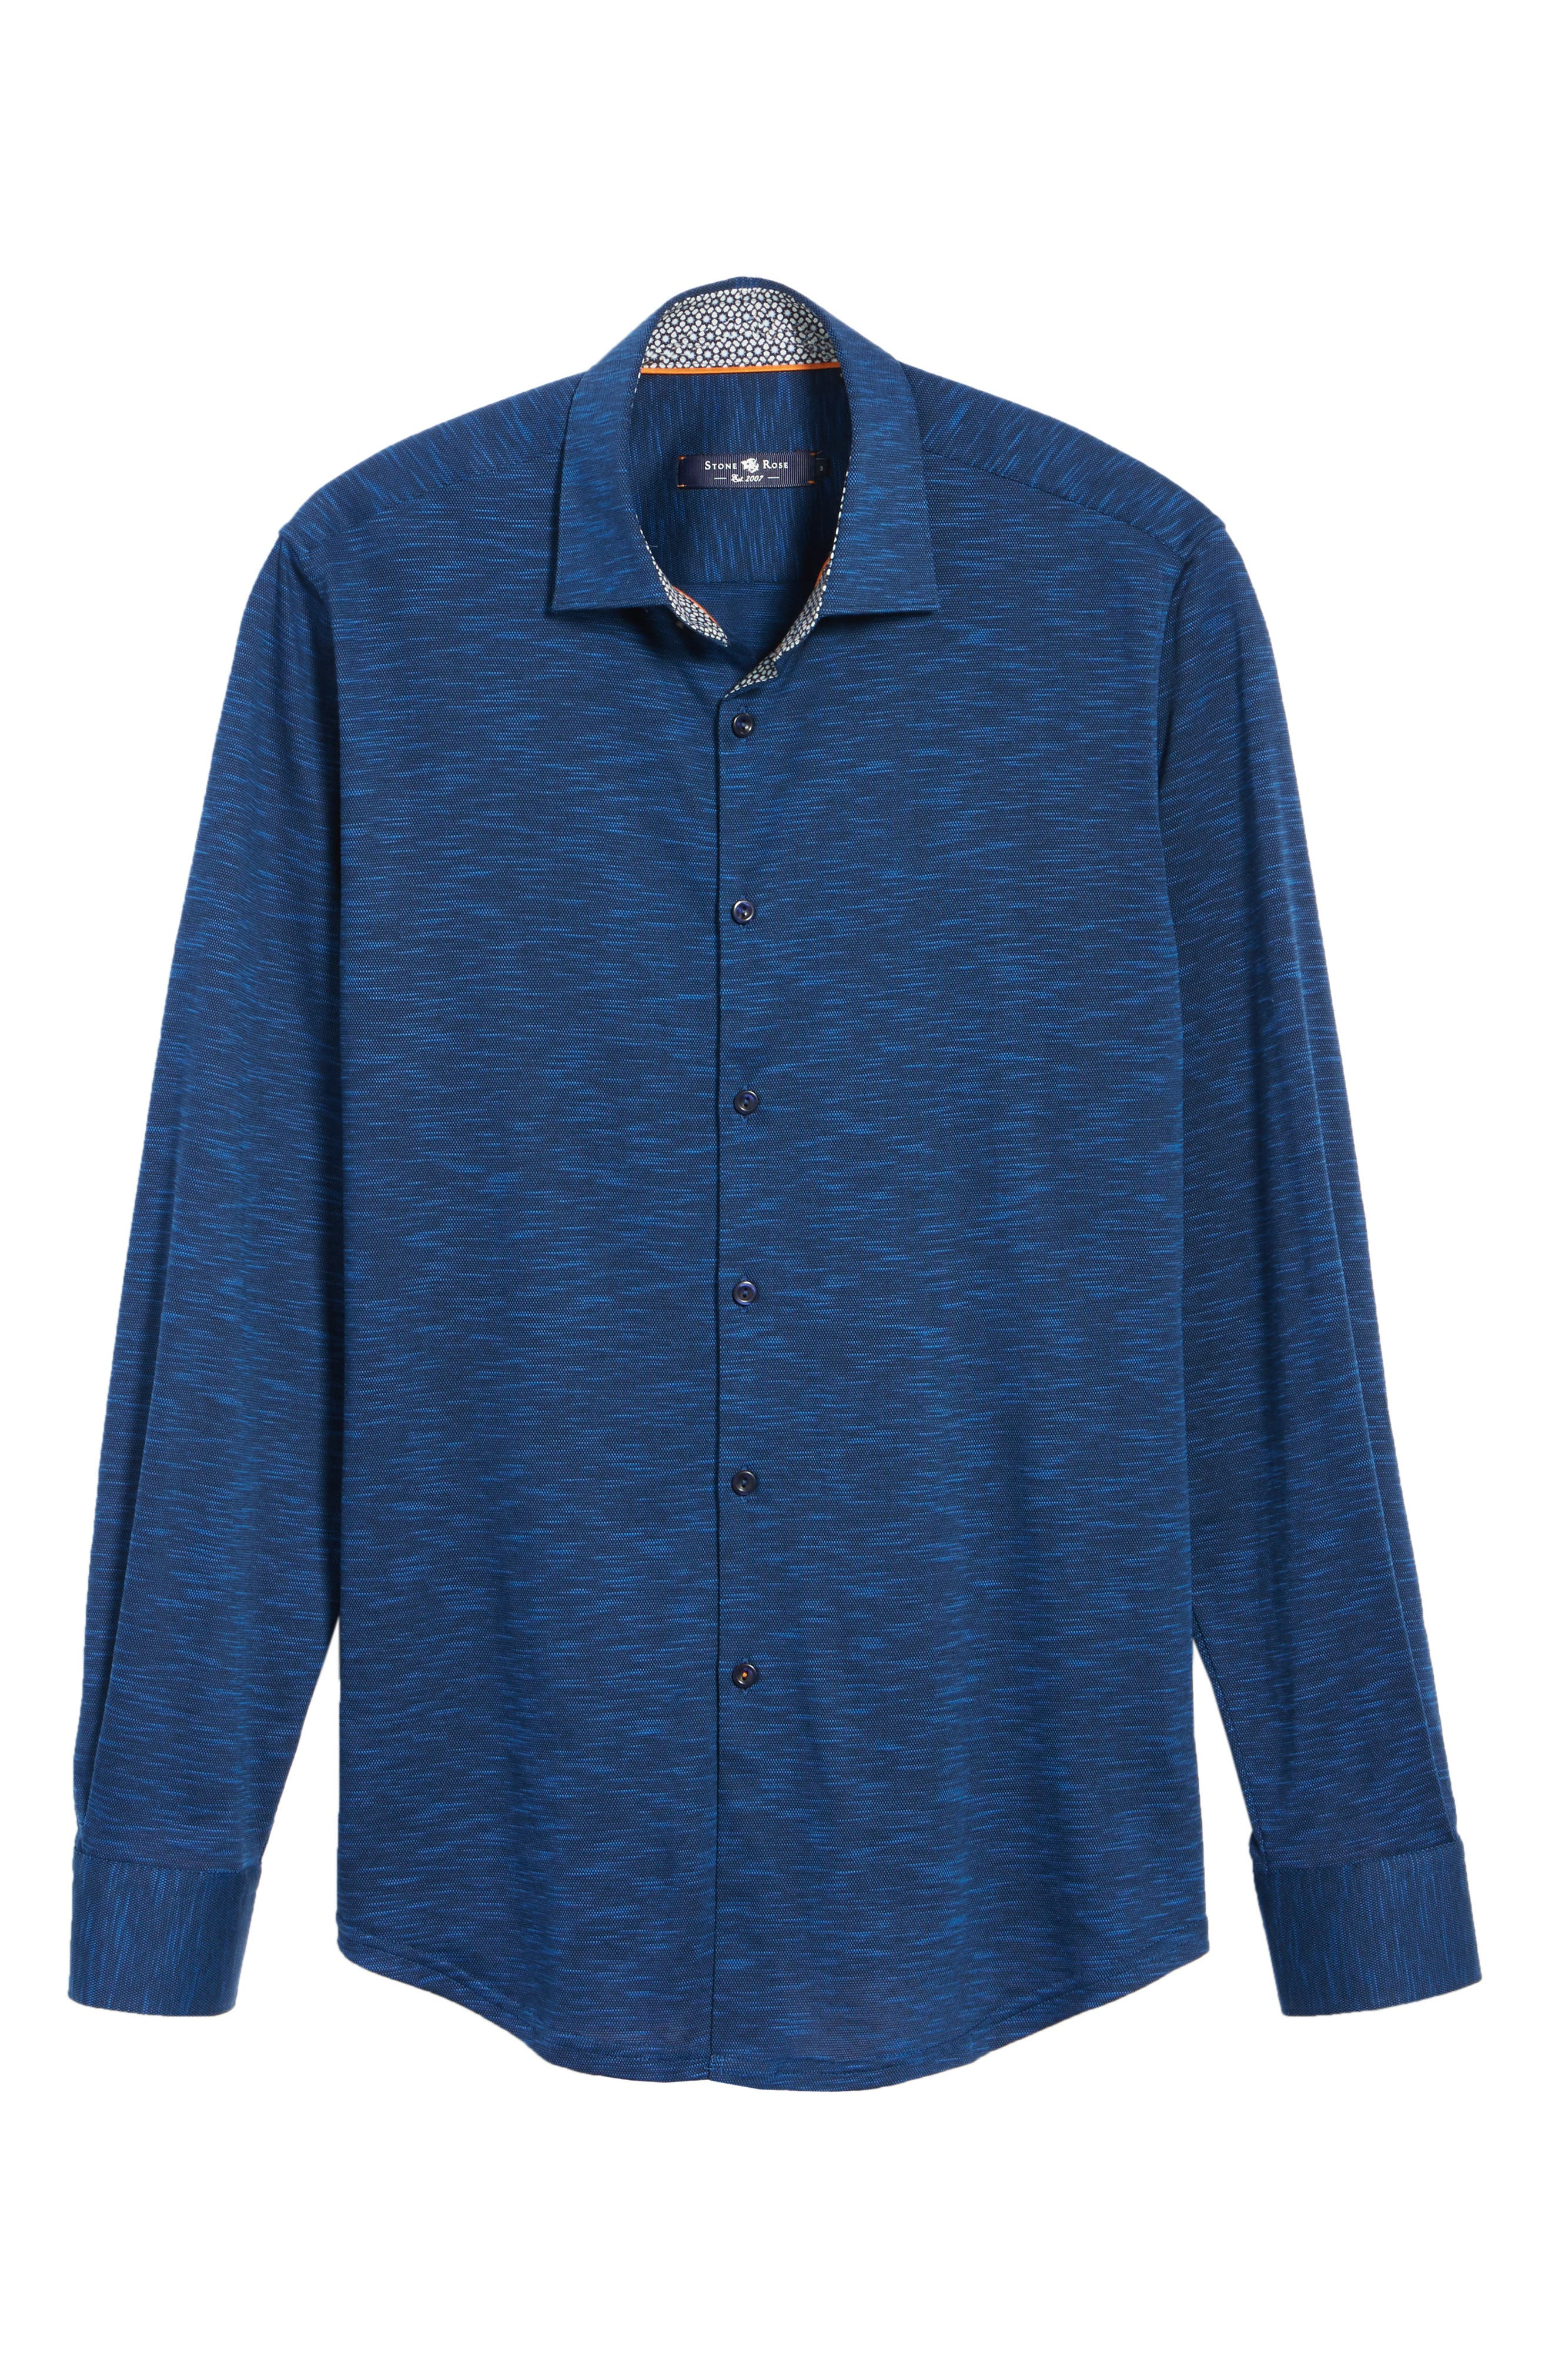 Flamé Knit Sport Shirt,                             Alternate thumbnail 6, color,                             Navy